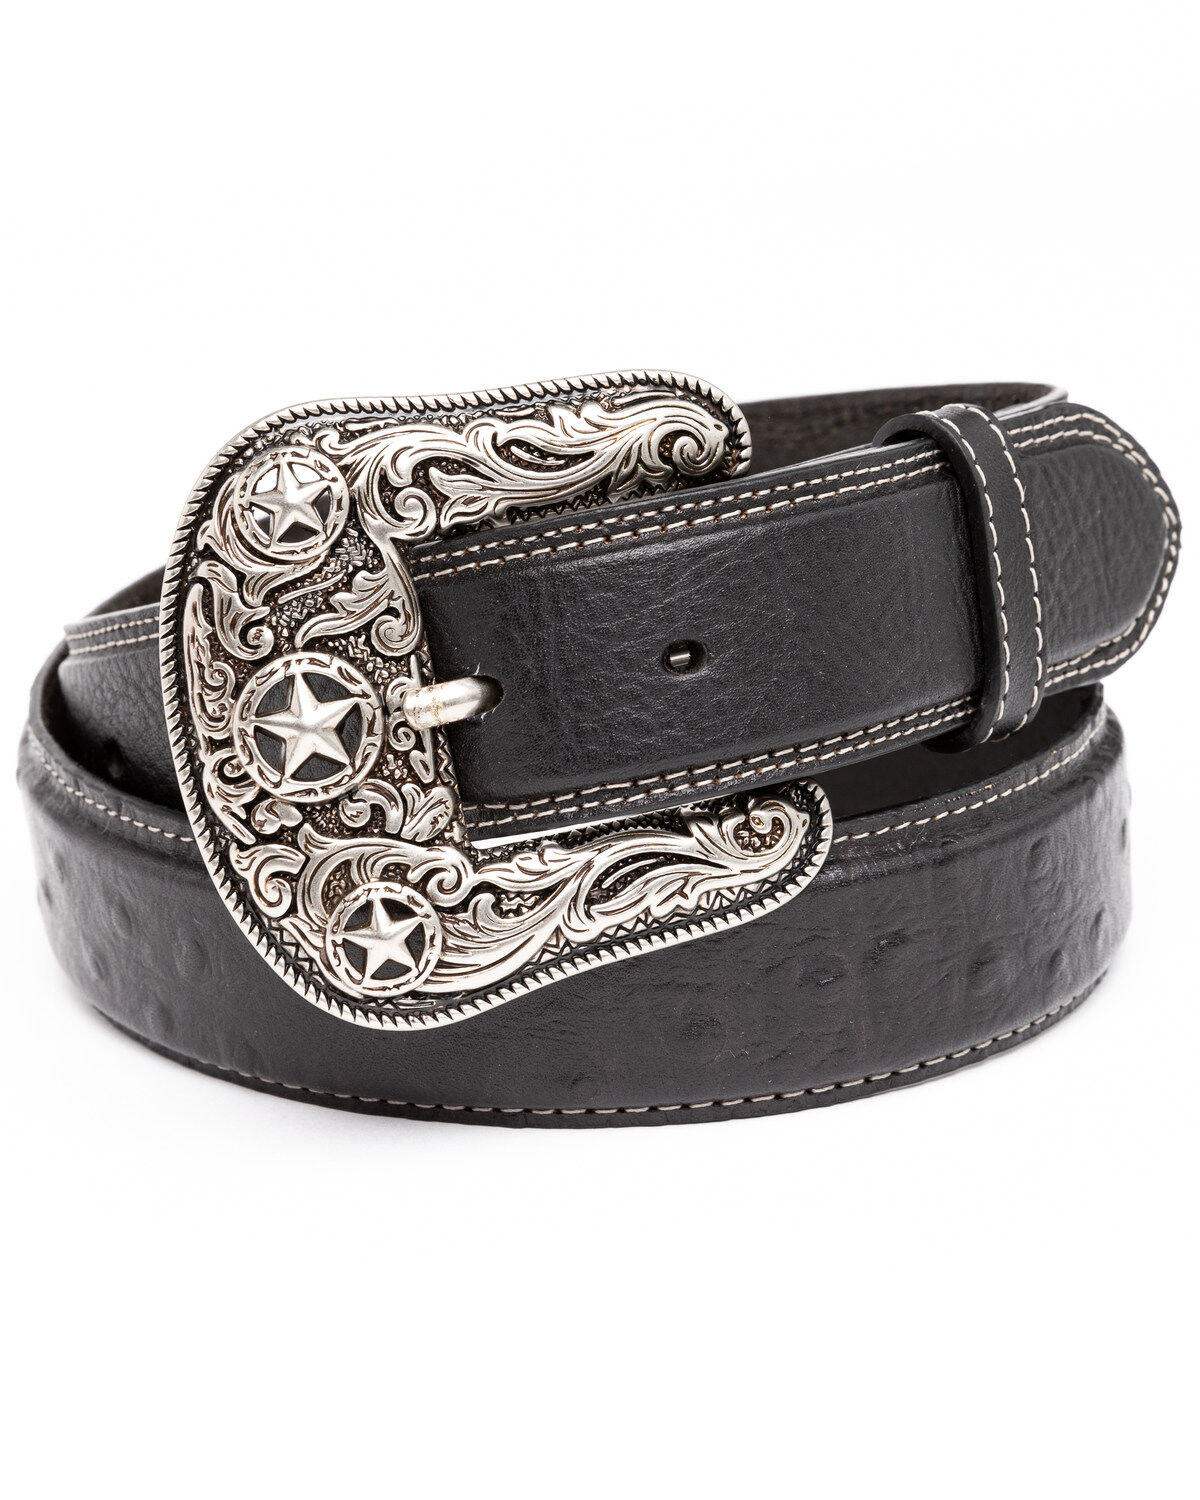 Unisex Cowboy Style Multi-Colour Bullets Black Belt Available in a Selection of sizes